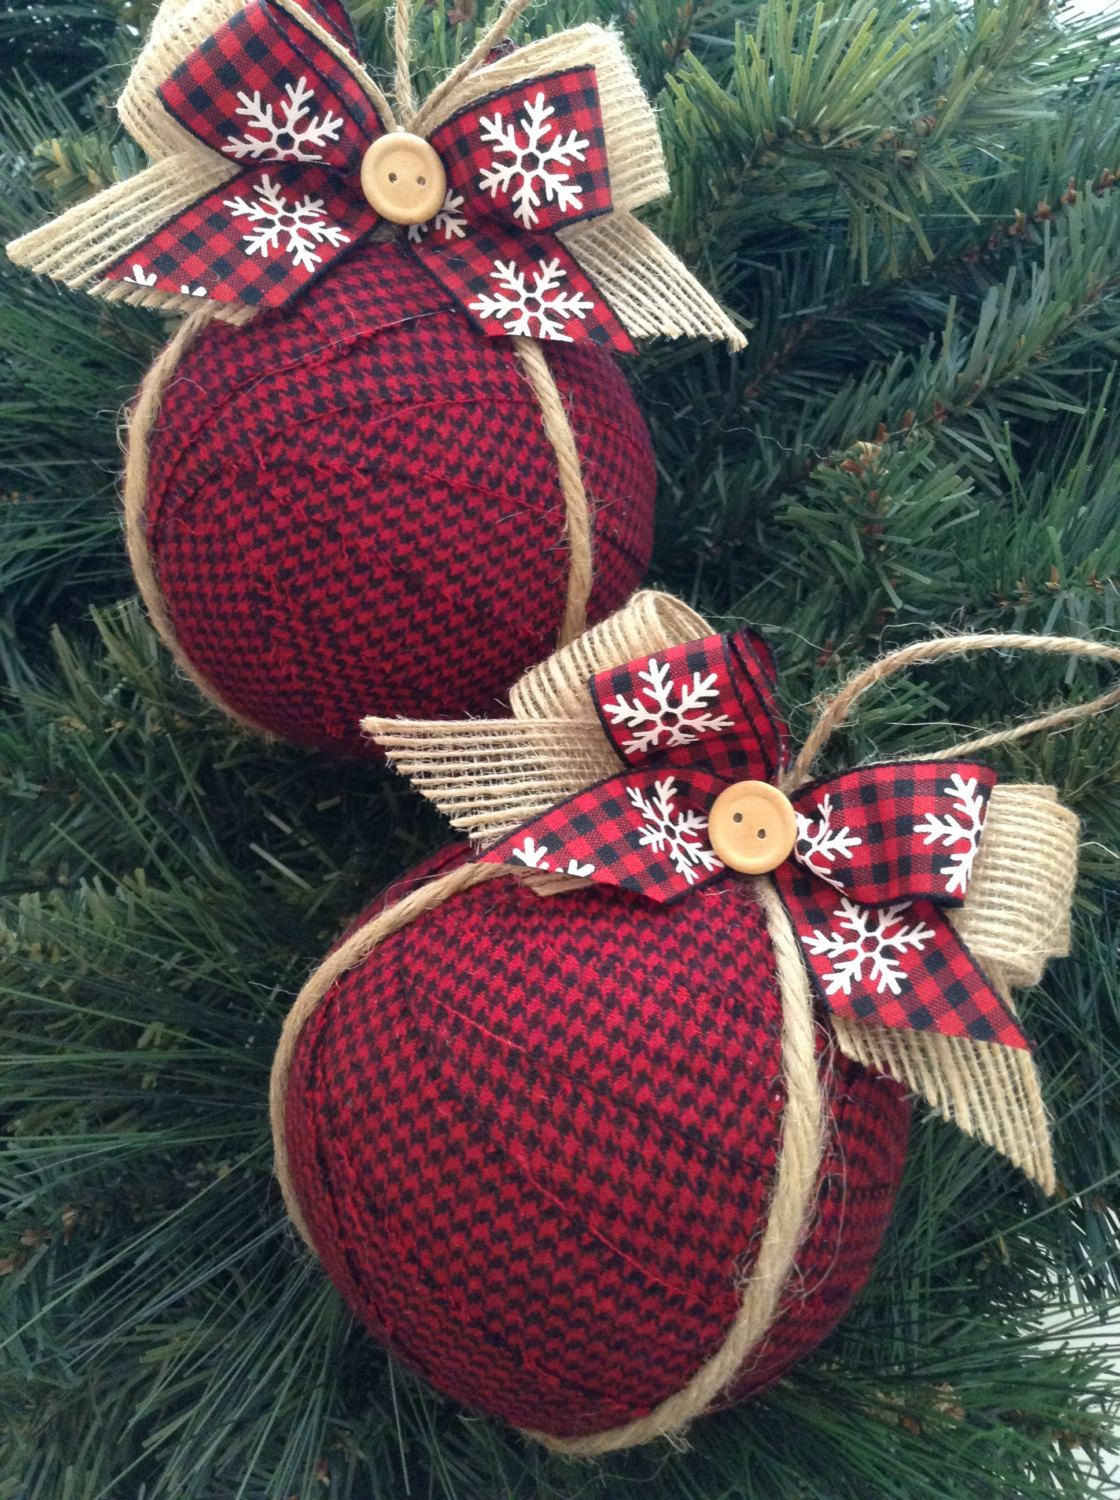 ornaments christmas fabric ornaments xmas tree ornaments red black burlap xmas ornaments set of 2 rustic xmas